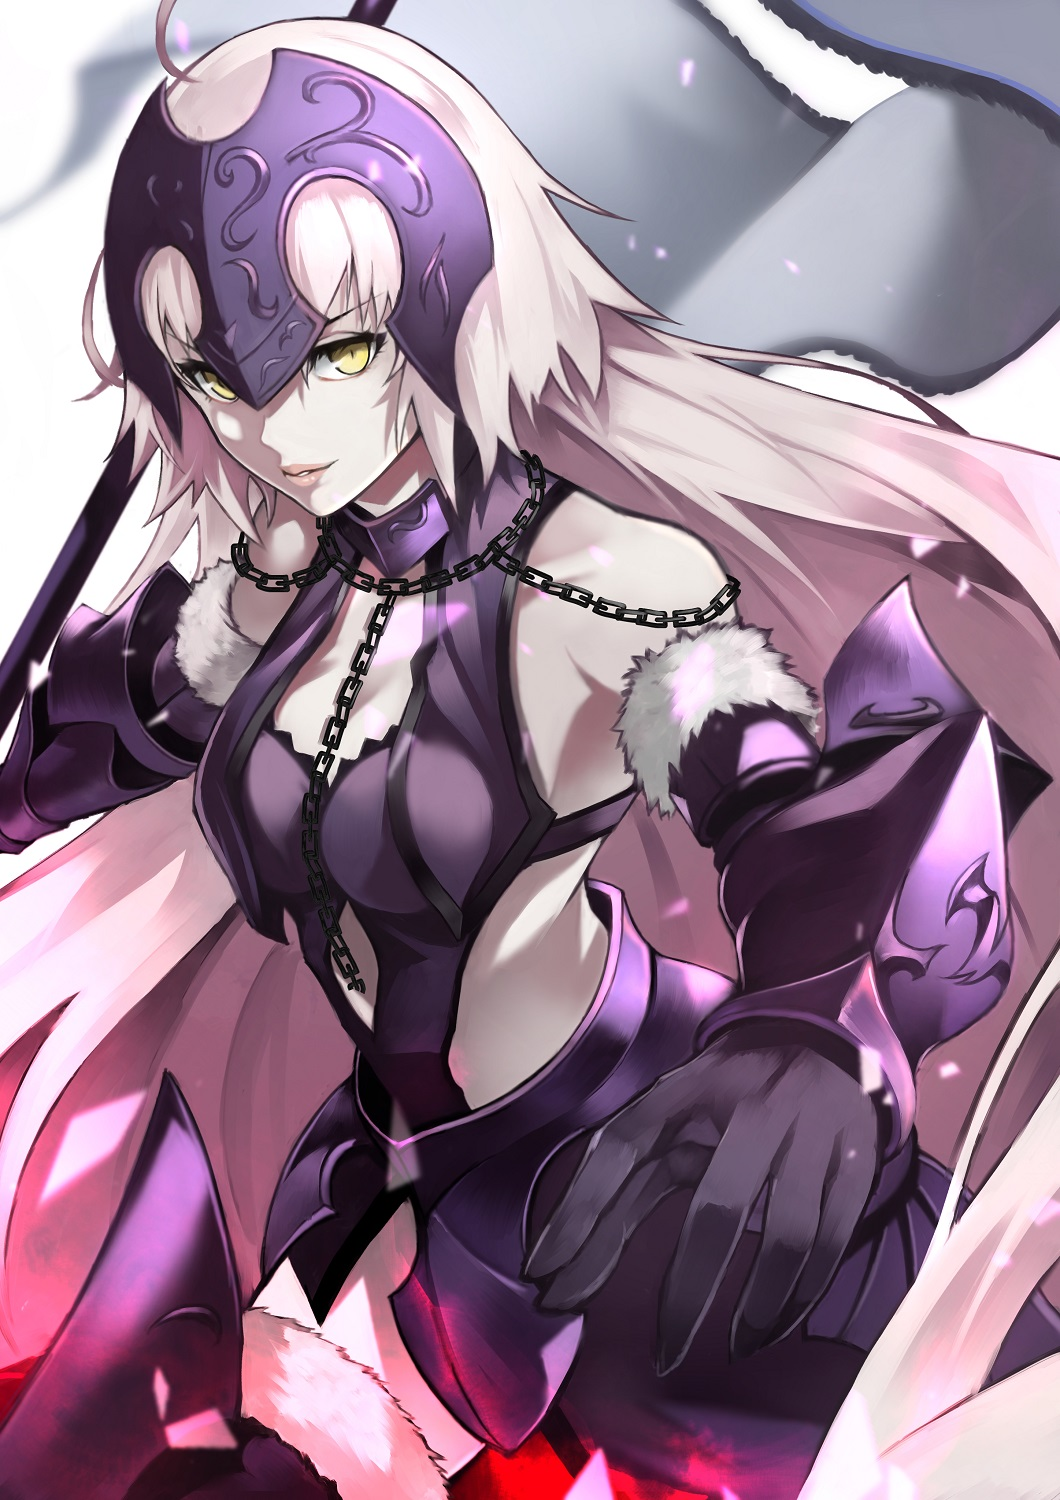 1girl 55level ahoge armor armored_dress bangs bare_shoulders breasts chain dress fate/grand_order fate_(series) faulds flag fur_trim gauntlets headpiece highres holding holding_flag jeanne_d'arc_(alter)_(fate) jeanne_d'arc_(fate)_(all) large_breasts long_hair looking_at_viewer pale_skin pink_lips purple_dress silver_hair thigh-highs very_long_hair yellow_eyes